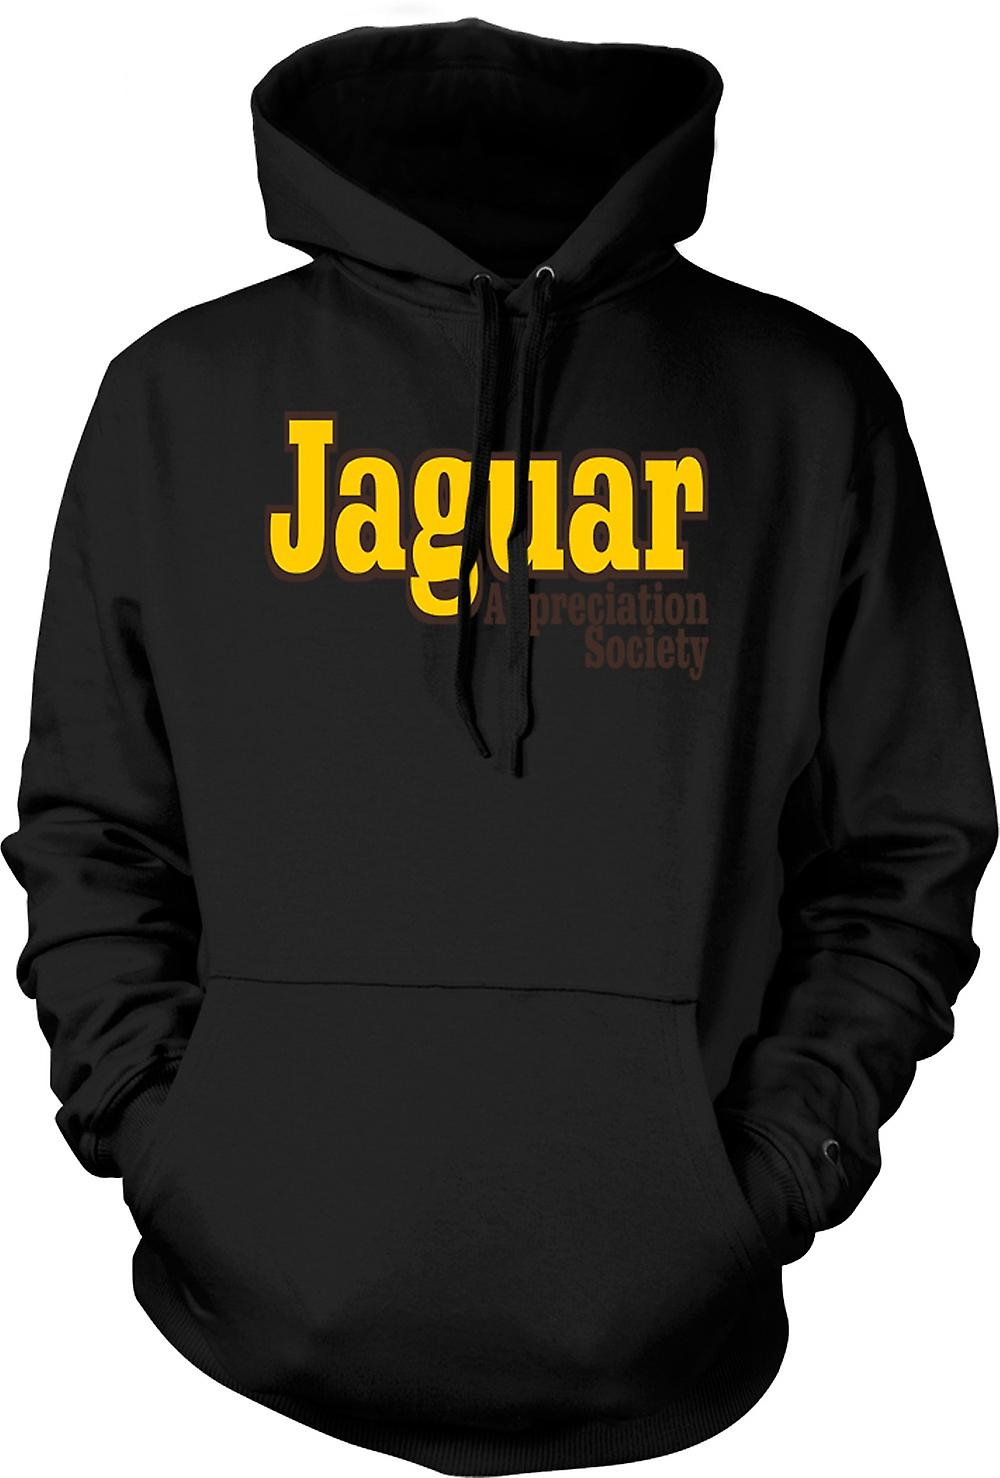 Mens Hoodie - Jaguar Appreciation Society